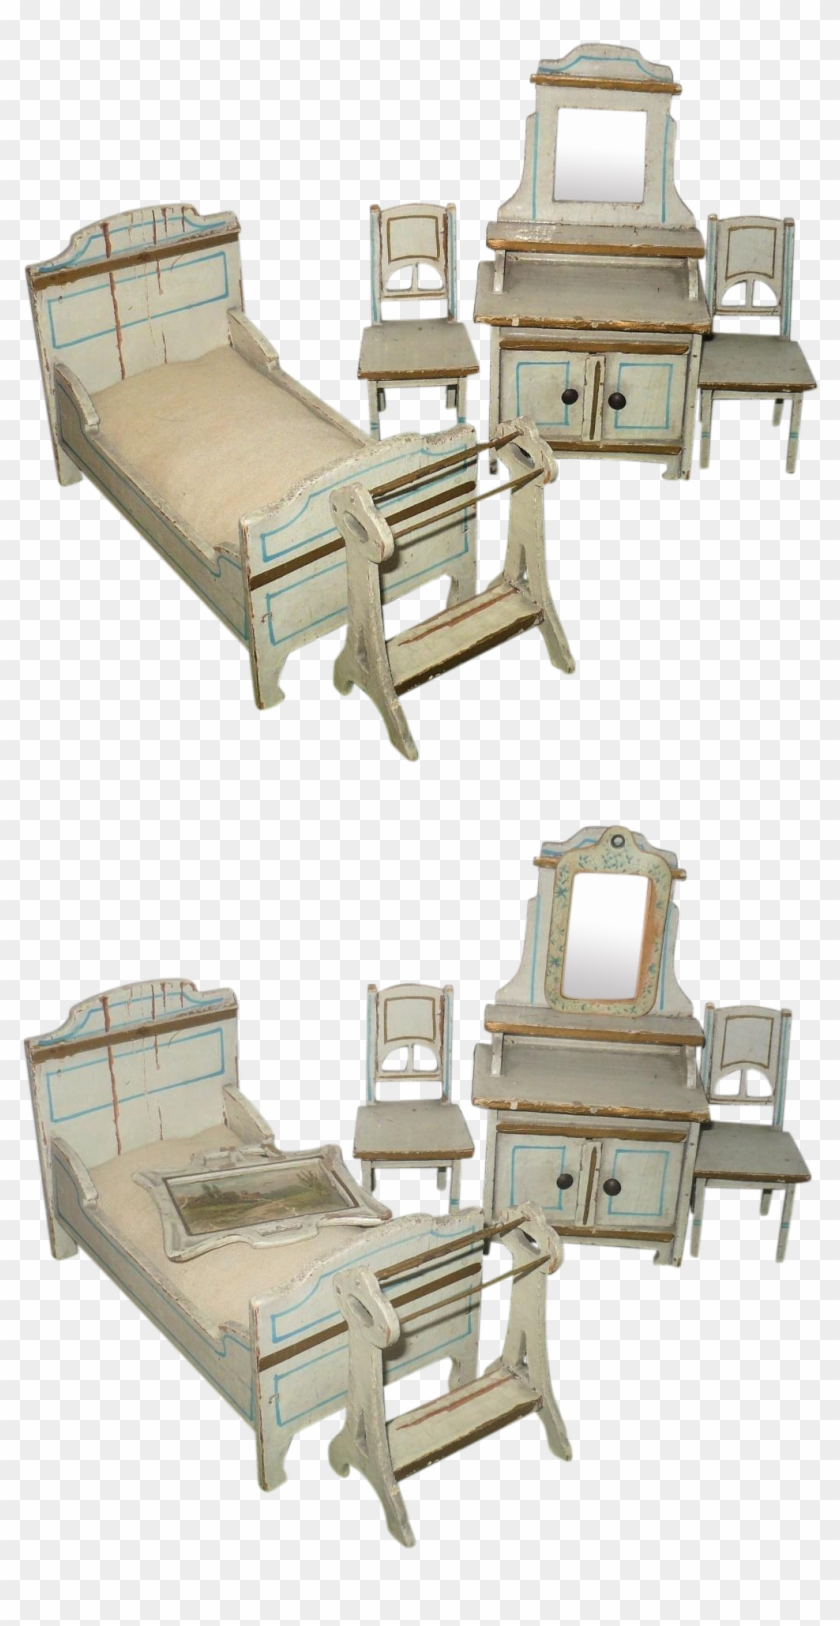 7 Pieces Art Nouveau German Cream Painted Wood Doll - Barber Chair #987287